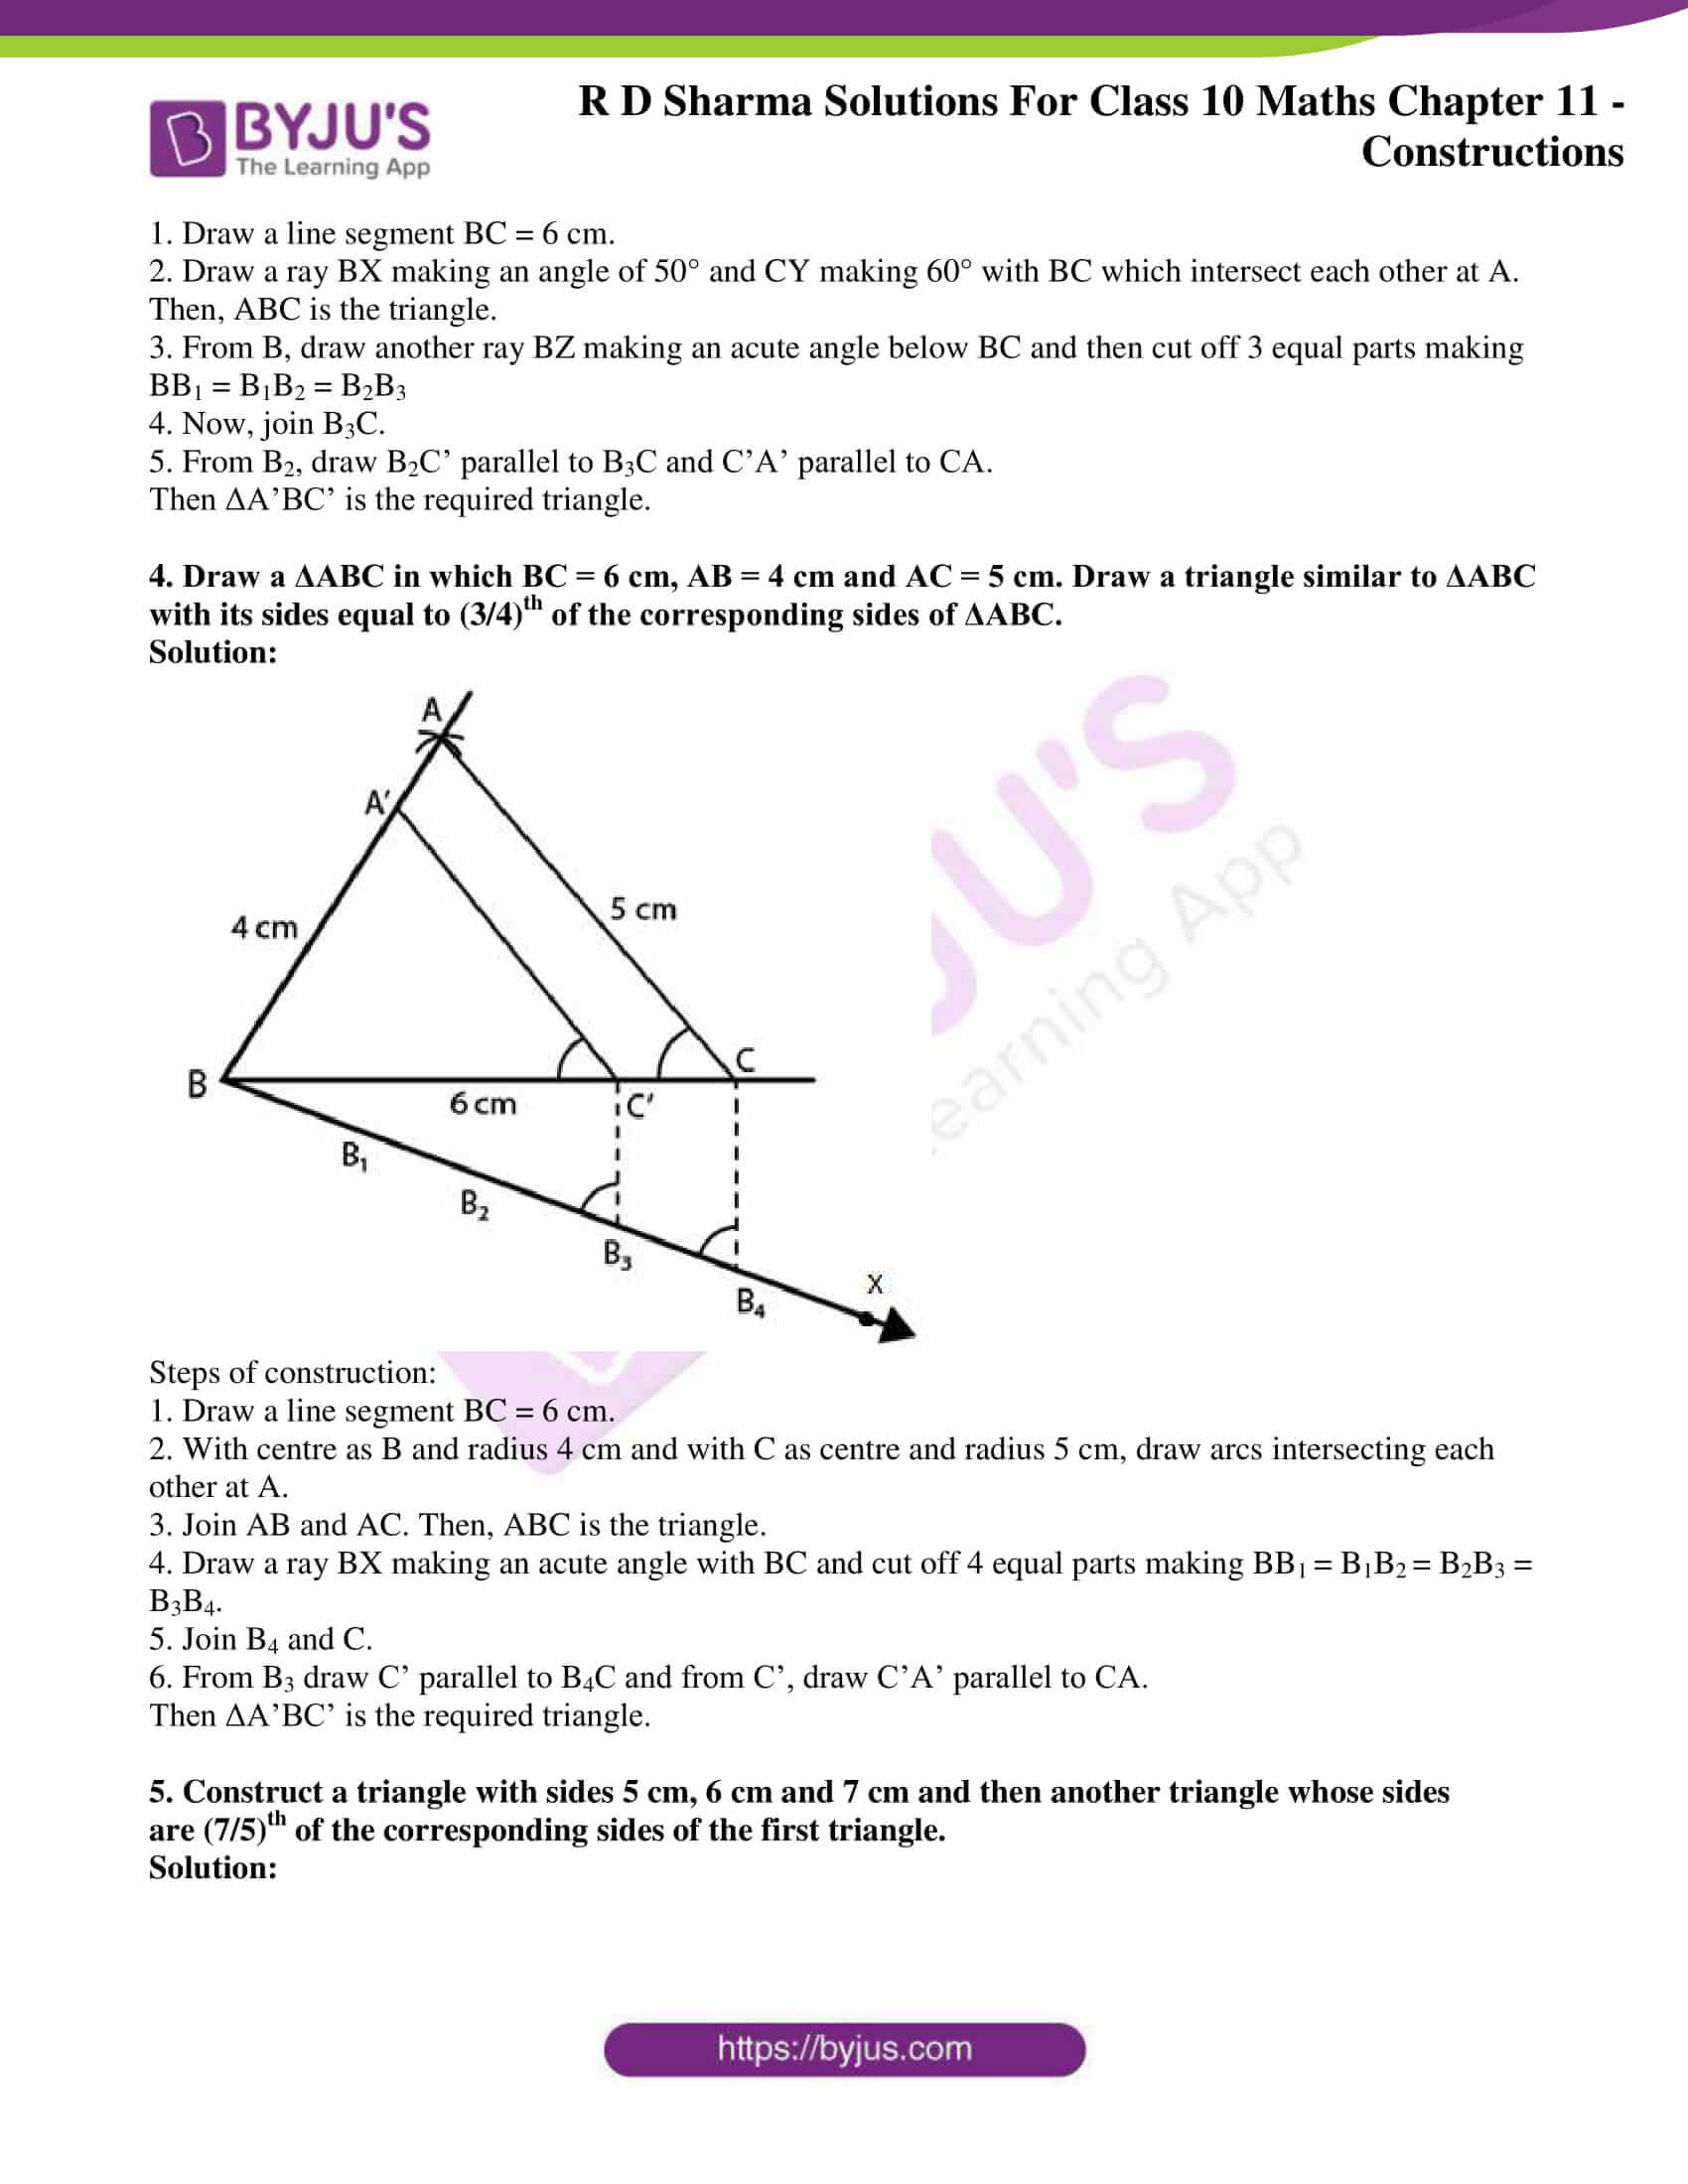 rd sharma class 10 chapter 11 constructions solutions exercise 2 3